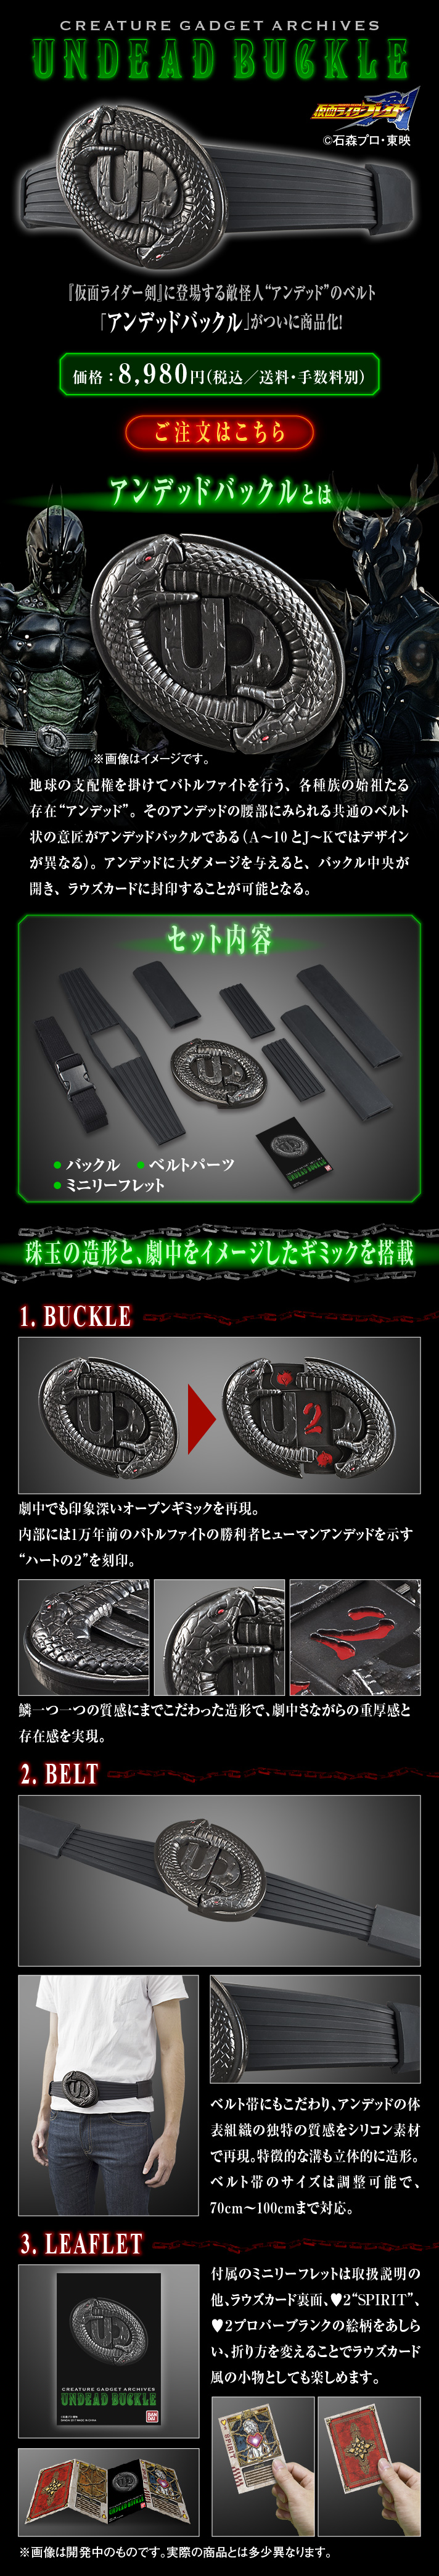 20161125_undead_buckle_web_pc